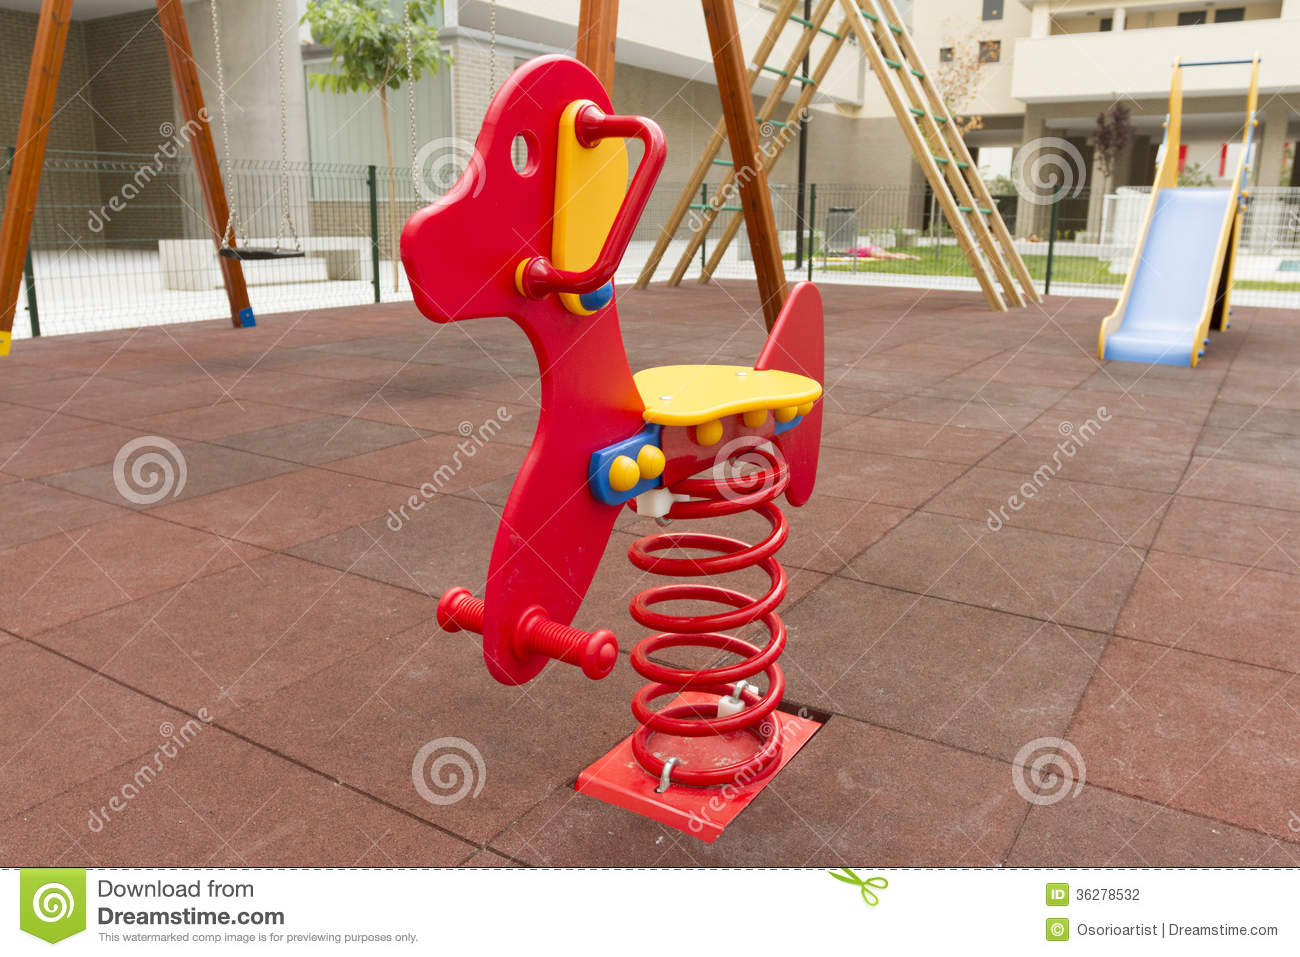 Red seesaw in playground toy stock photography image for Seesaw plans designs